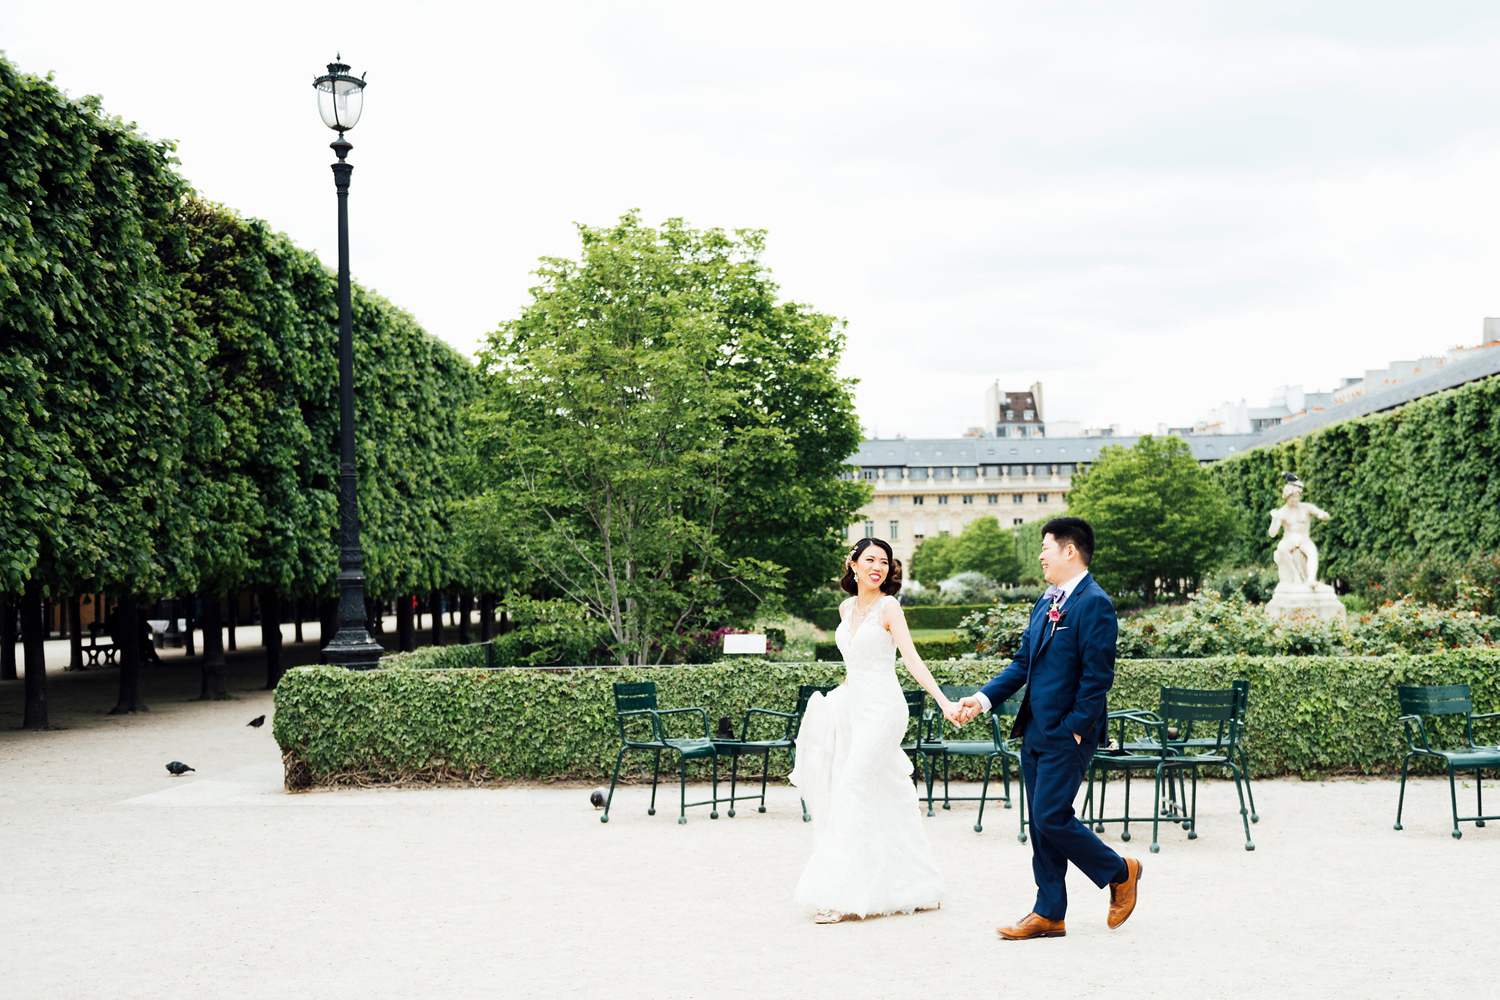 320-katie-mitchell-paris-wedding-elopement-photographer-france.jpg